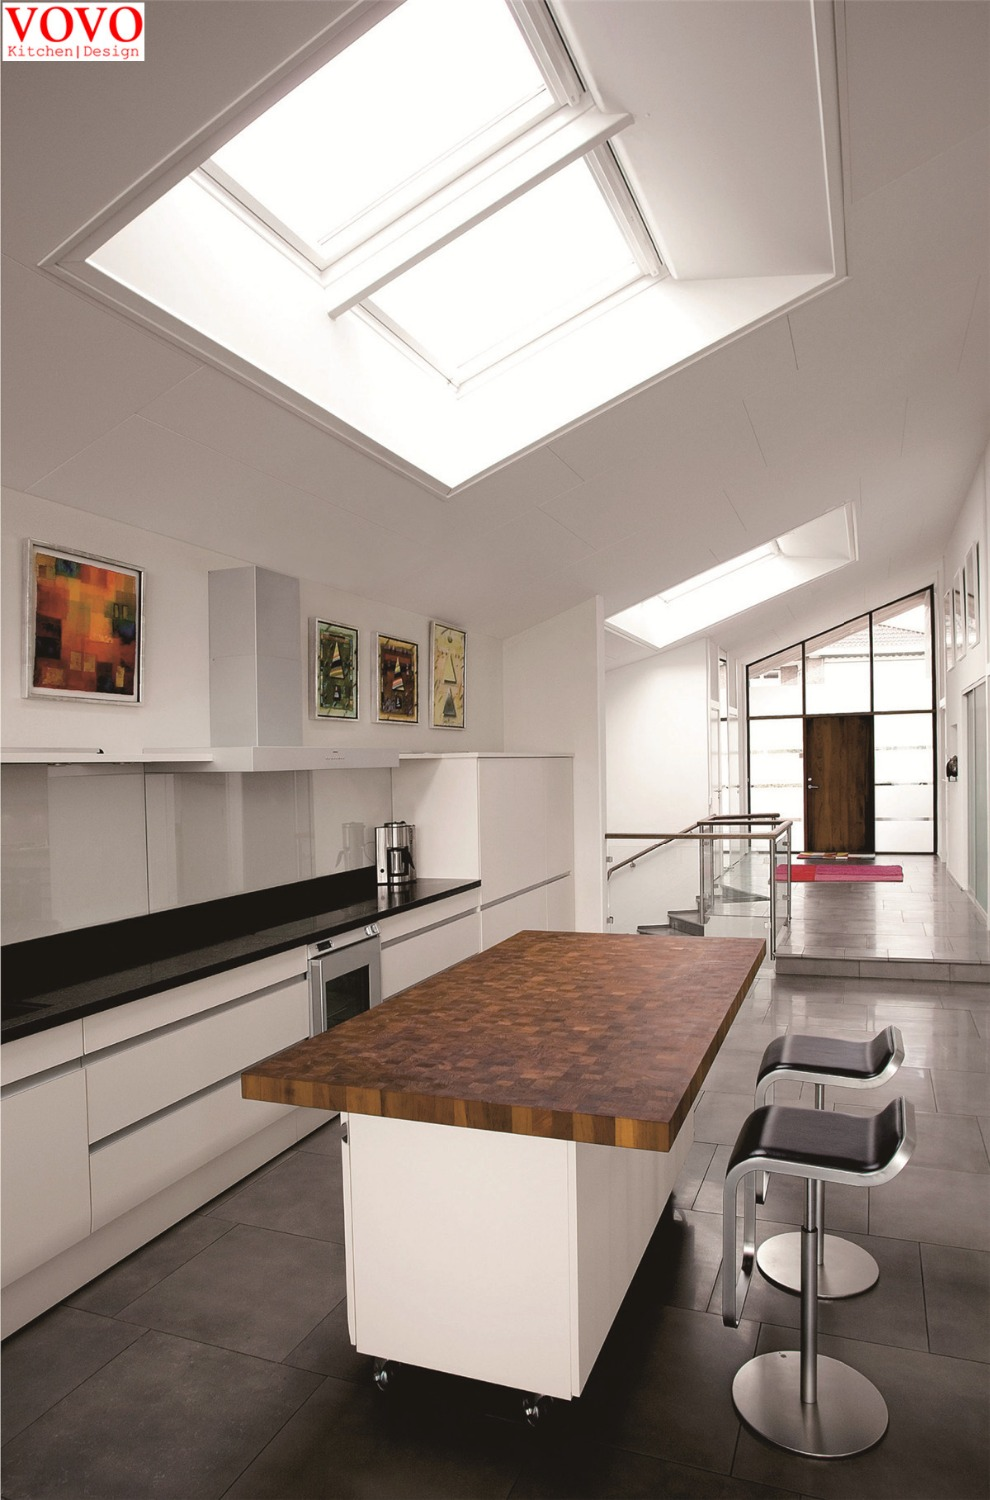 Handless kitchen cabinets in high gloss white on for Handless kitchen units